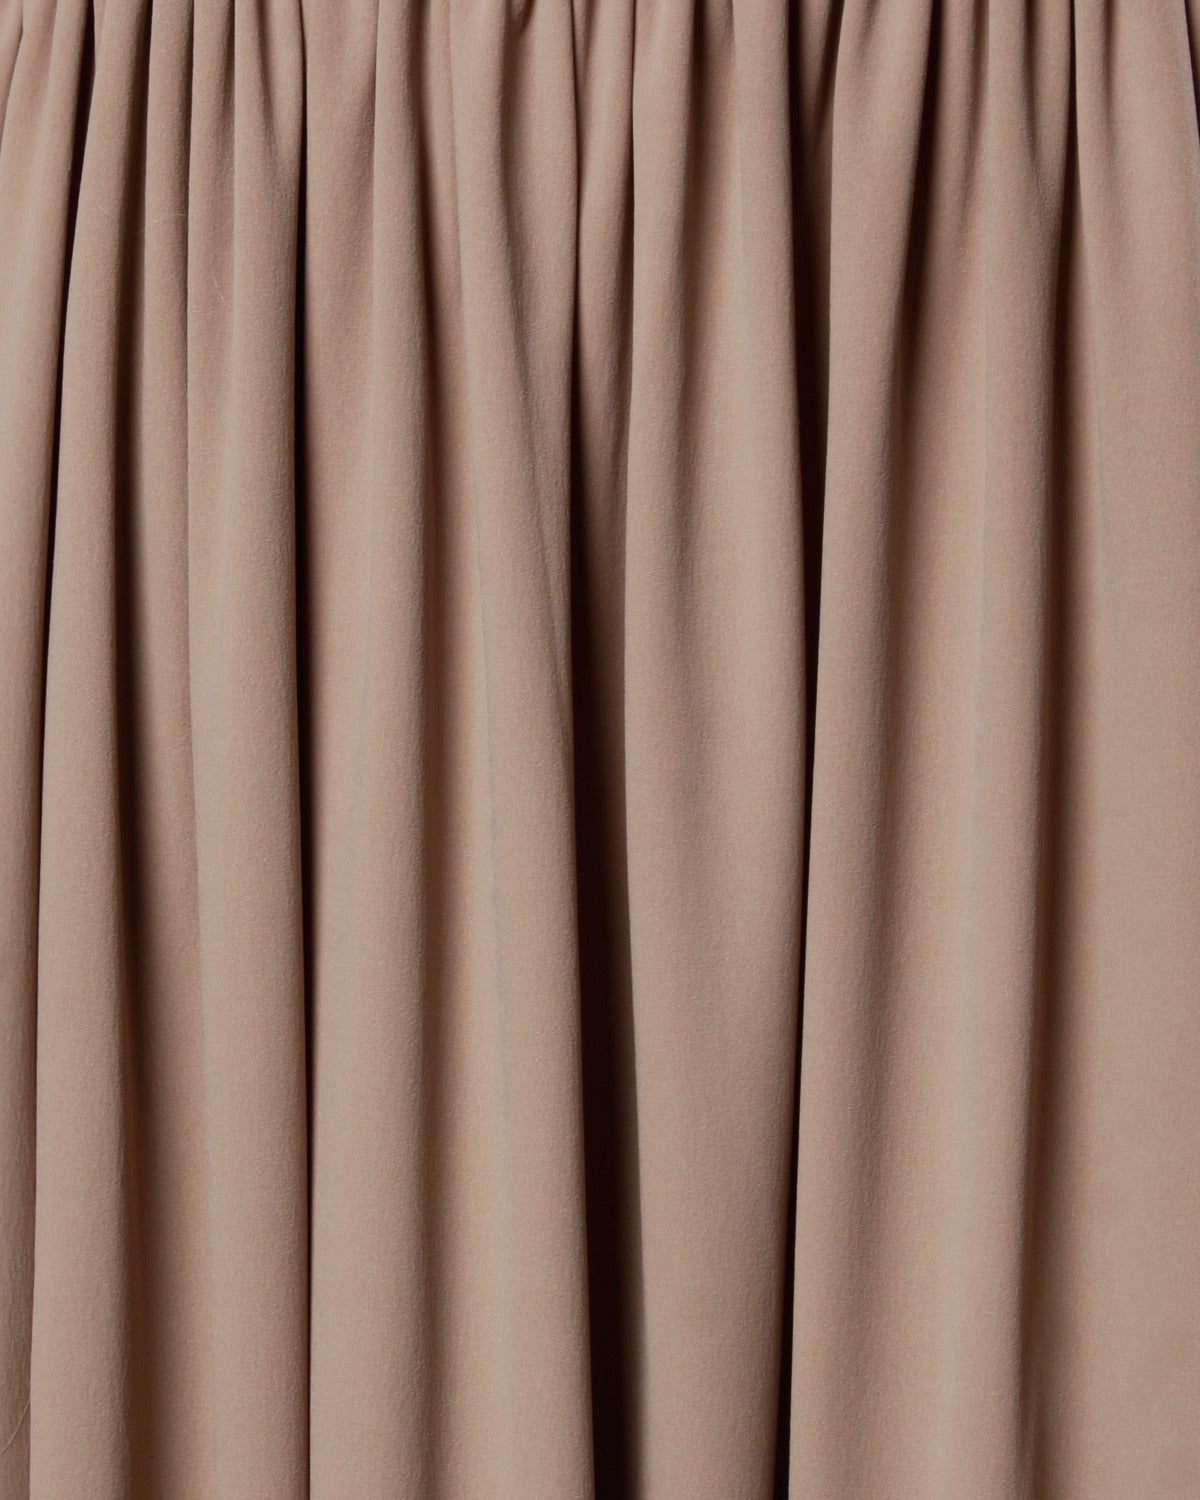 Victor Costa Deadstock Vintage Nude Halter Dress with Original Tags For Sale 1